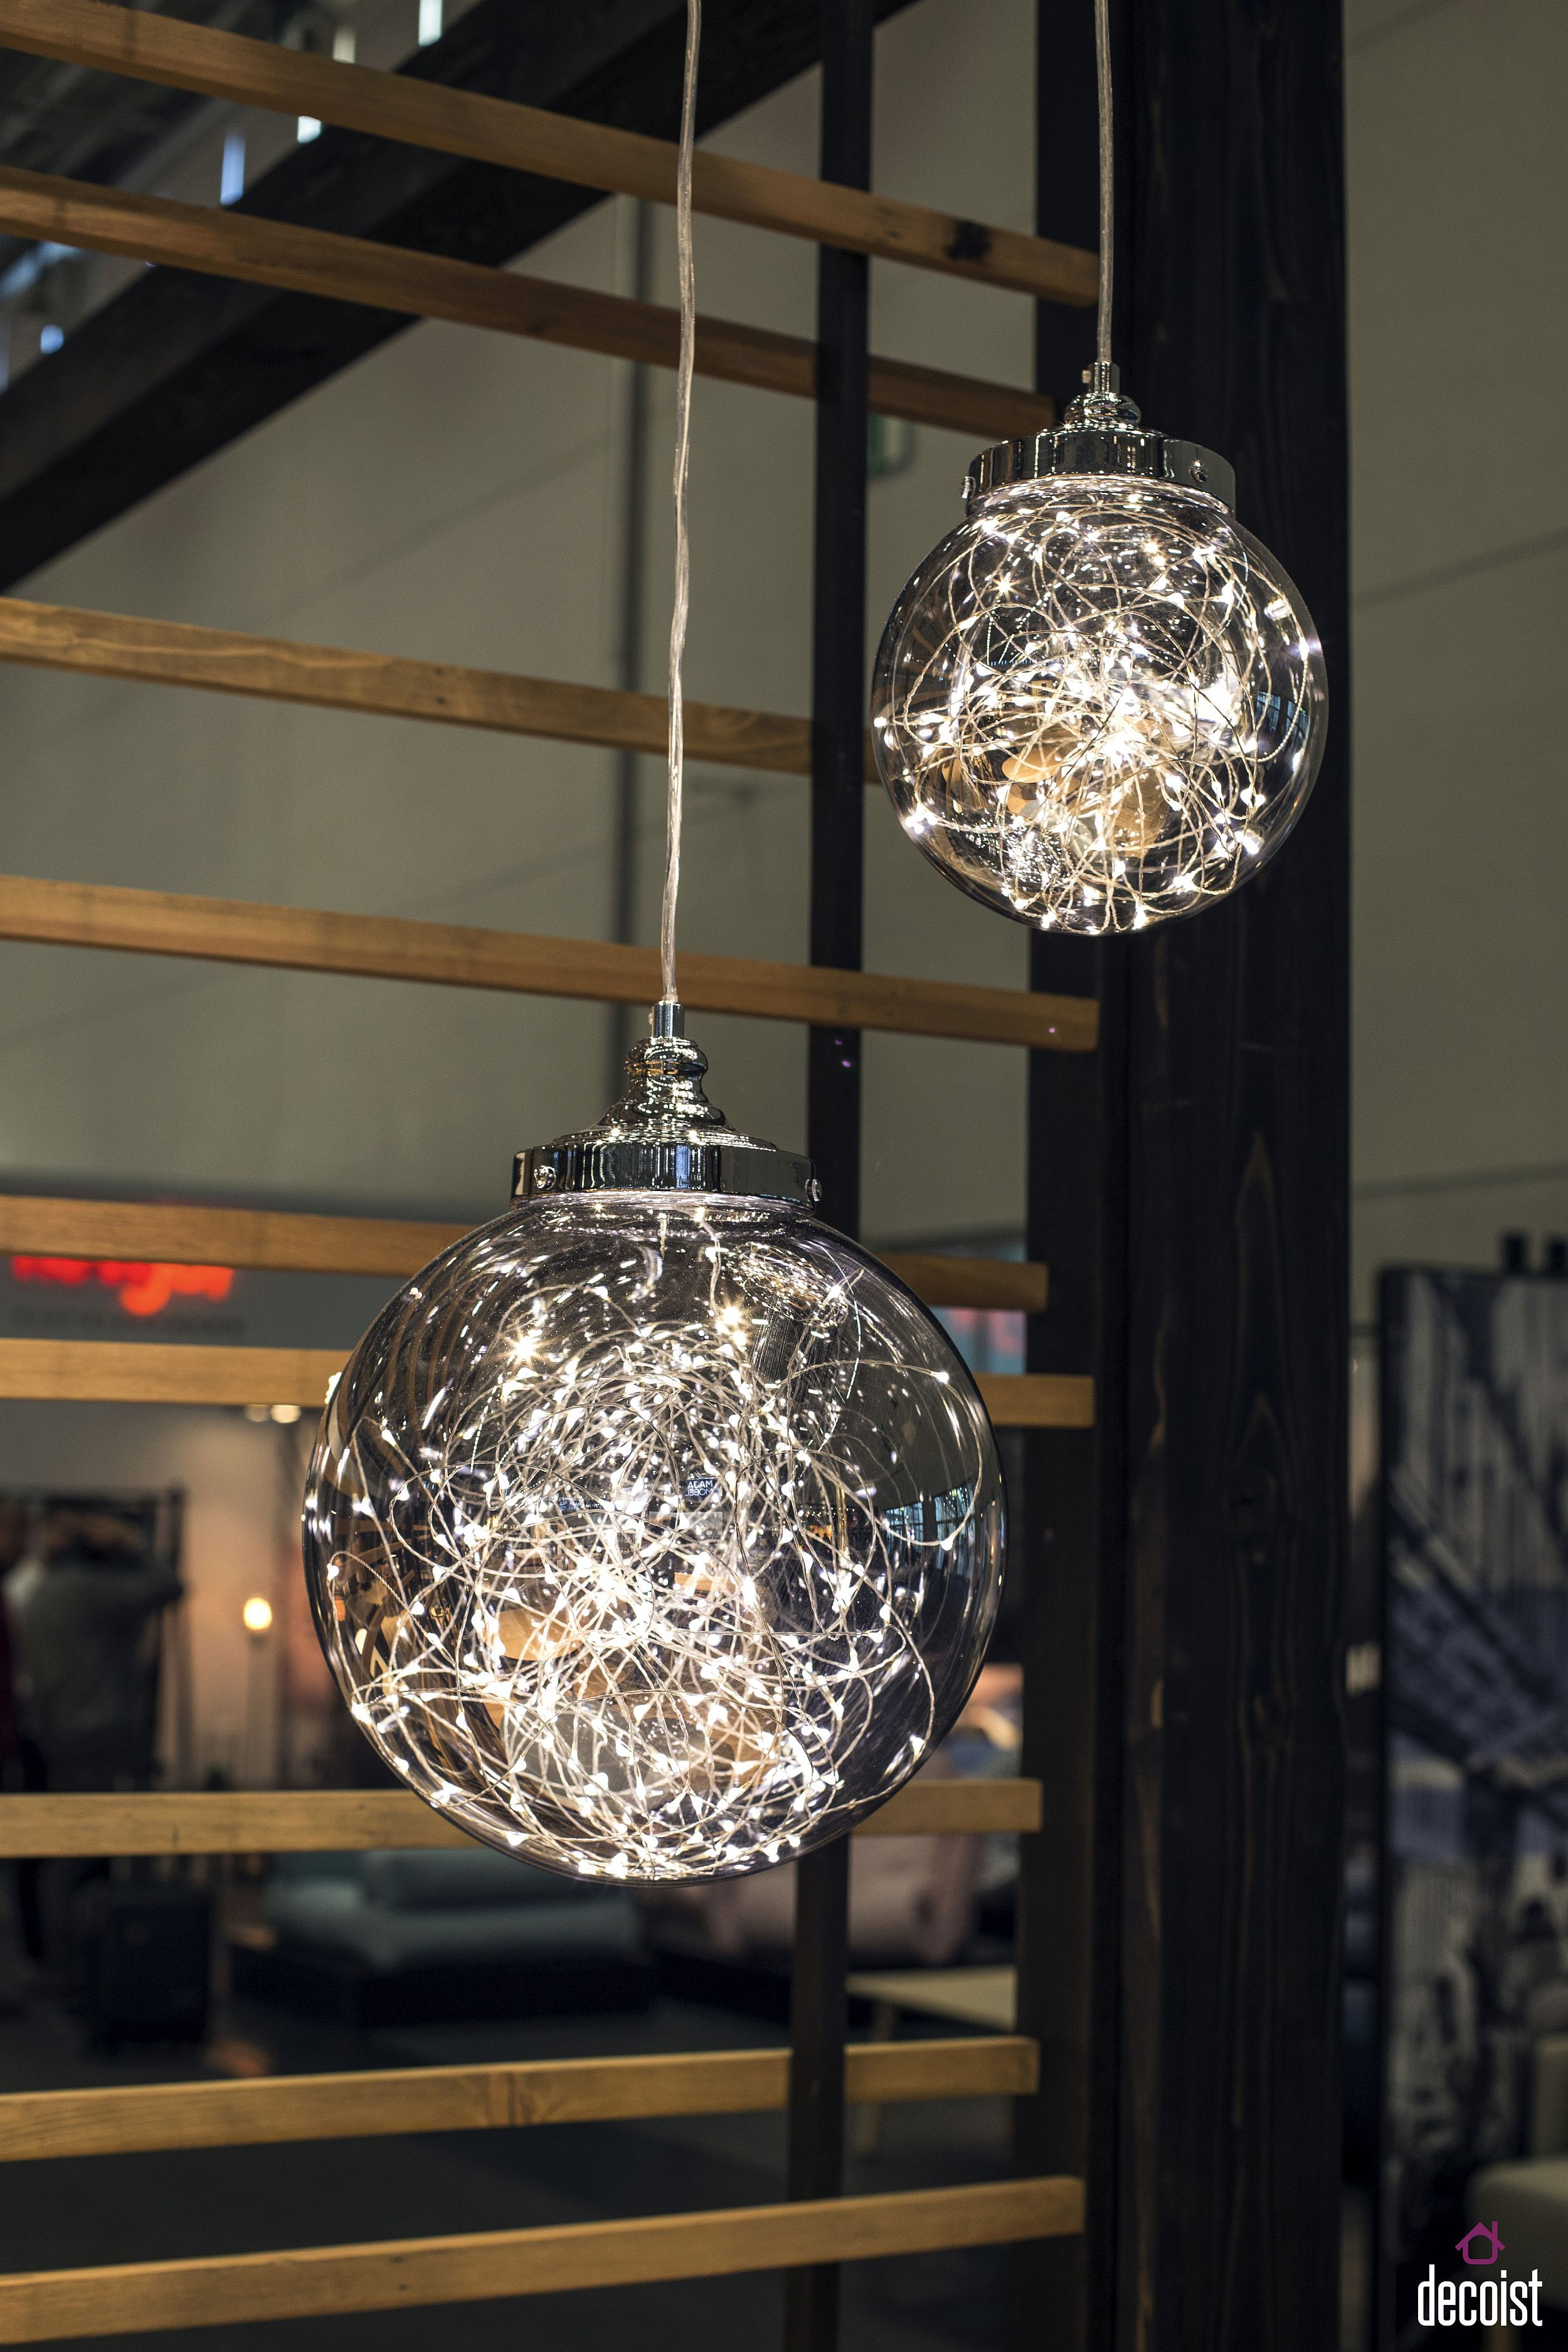 Novel Trends 75 Dazzling Lighting Ideas To Fall In Love With